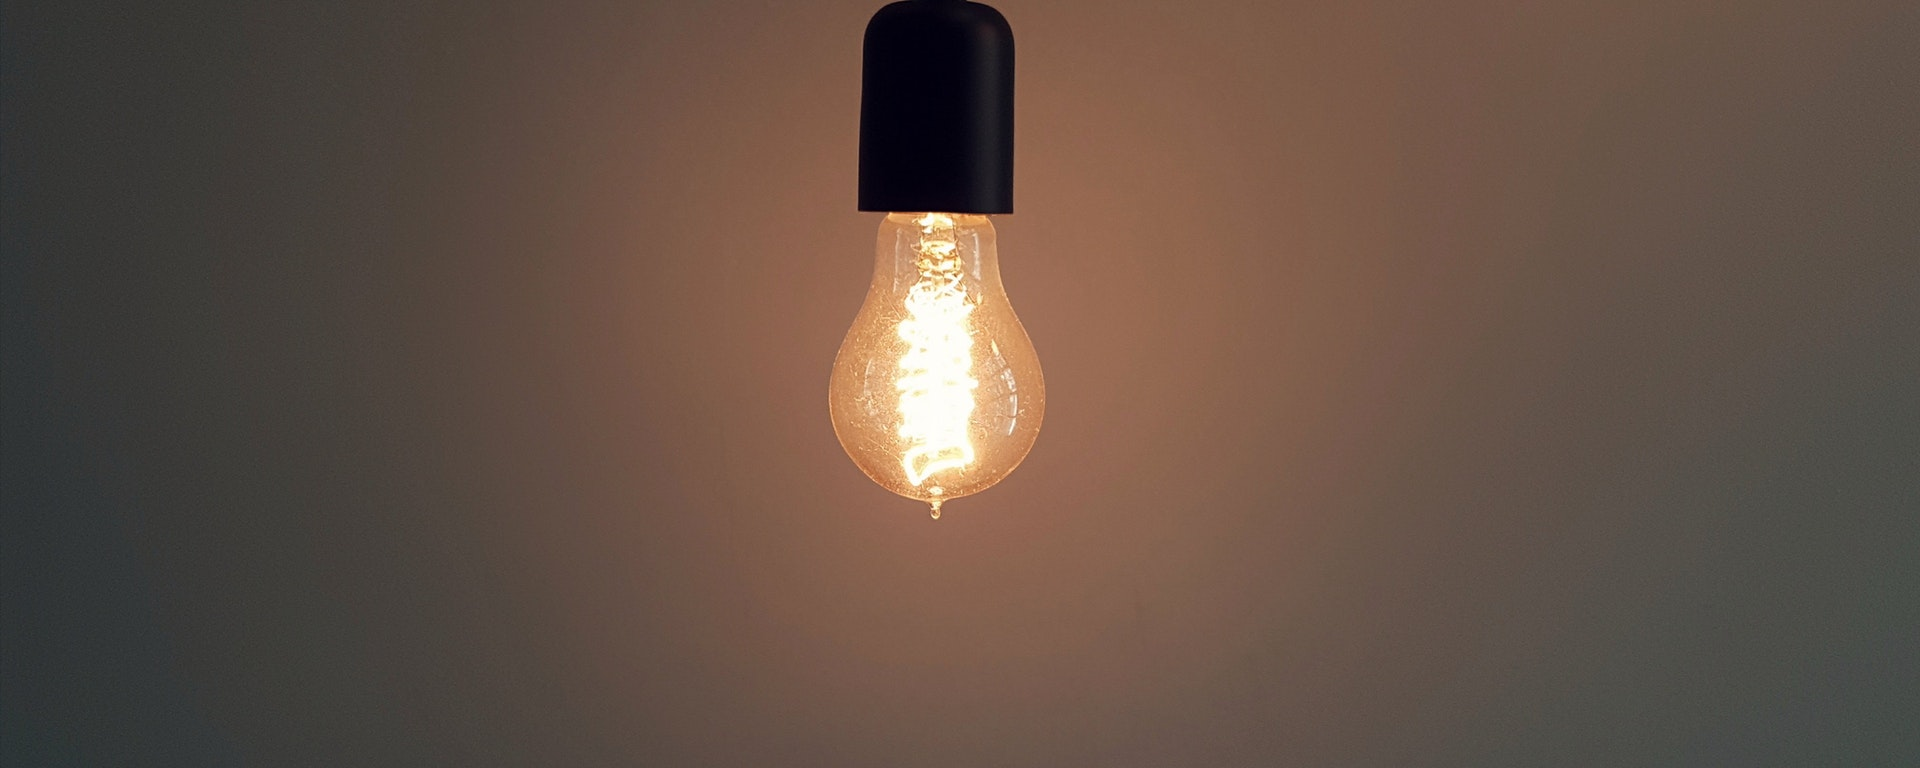 Single lightbulb turned on